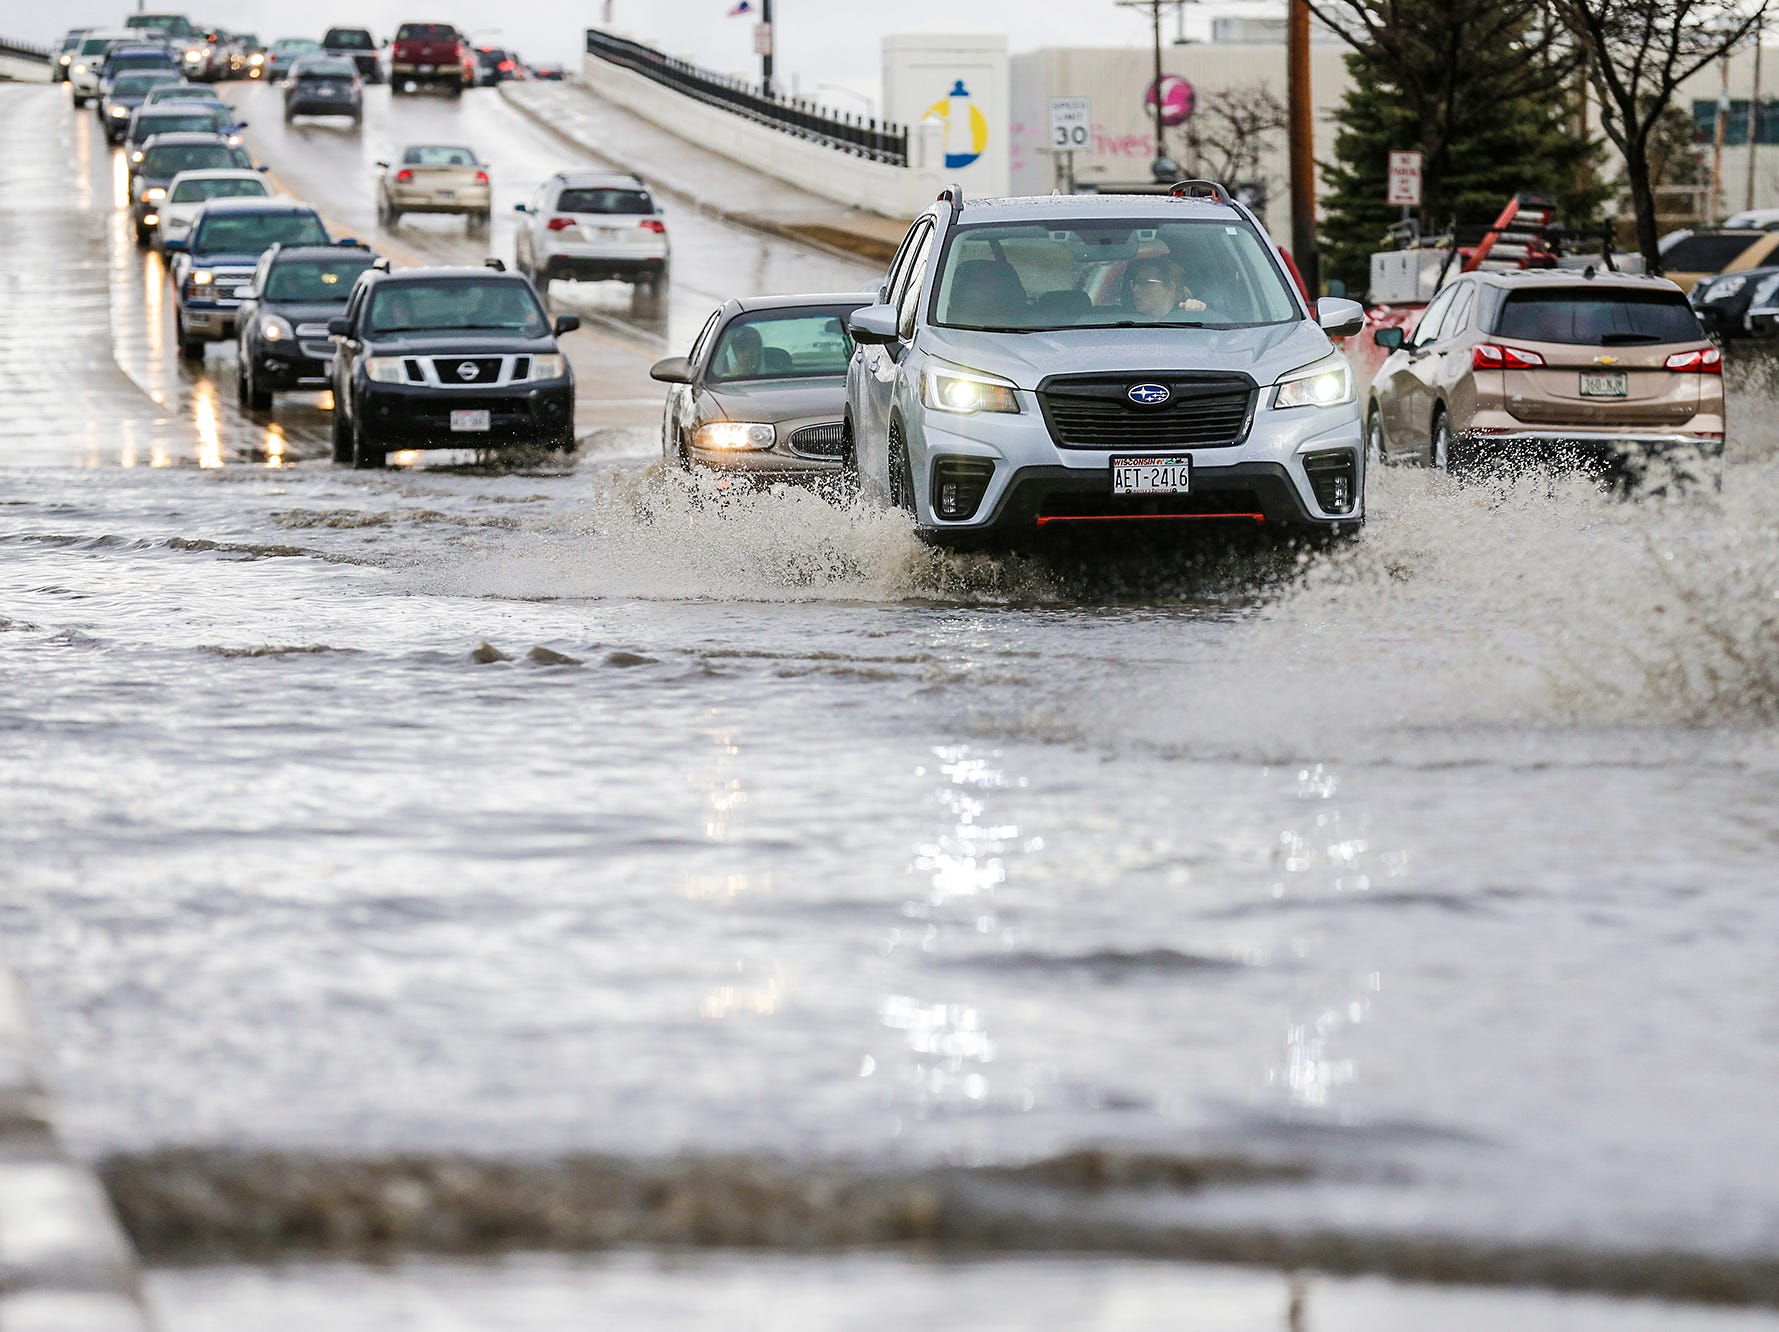 Cars travel through high water Thursday, March 14, 2019 on west Johnson Street in Fond du Lac, Wisconsin. Ice jams on the east branch of the Fond du Lac River and heavy rainfall caused flooding problems throughout the city.